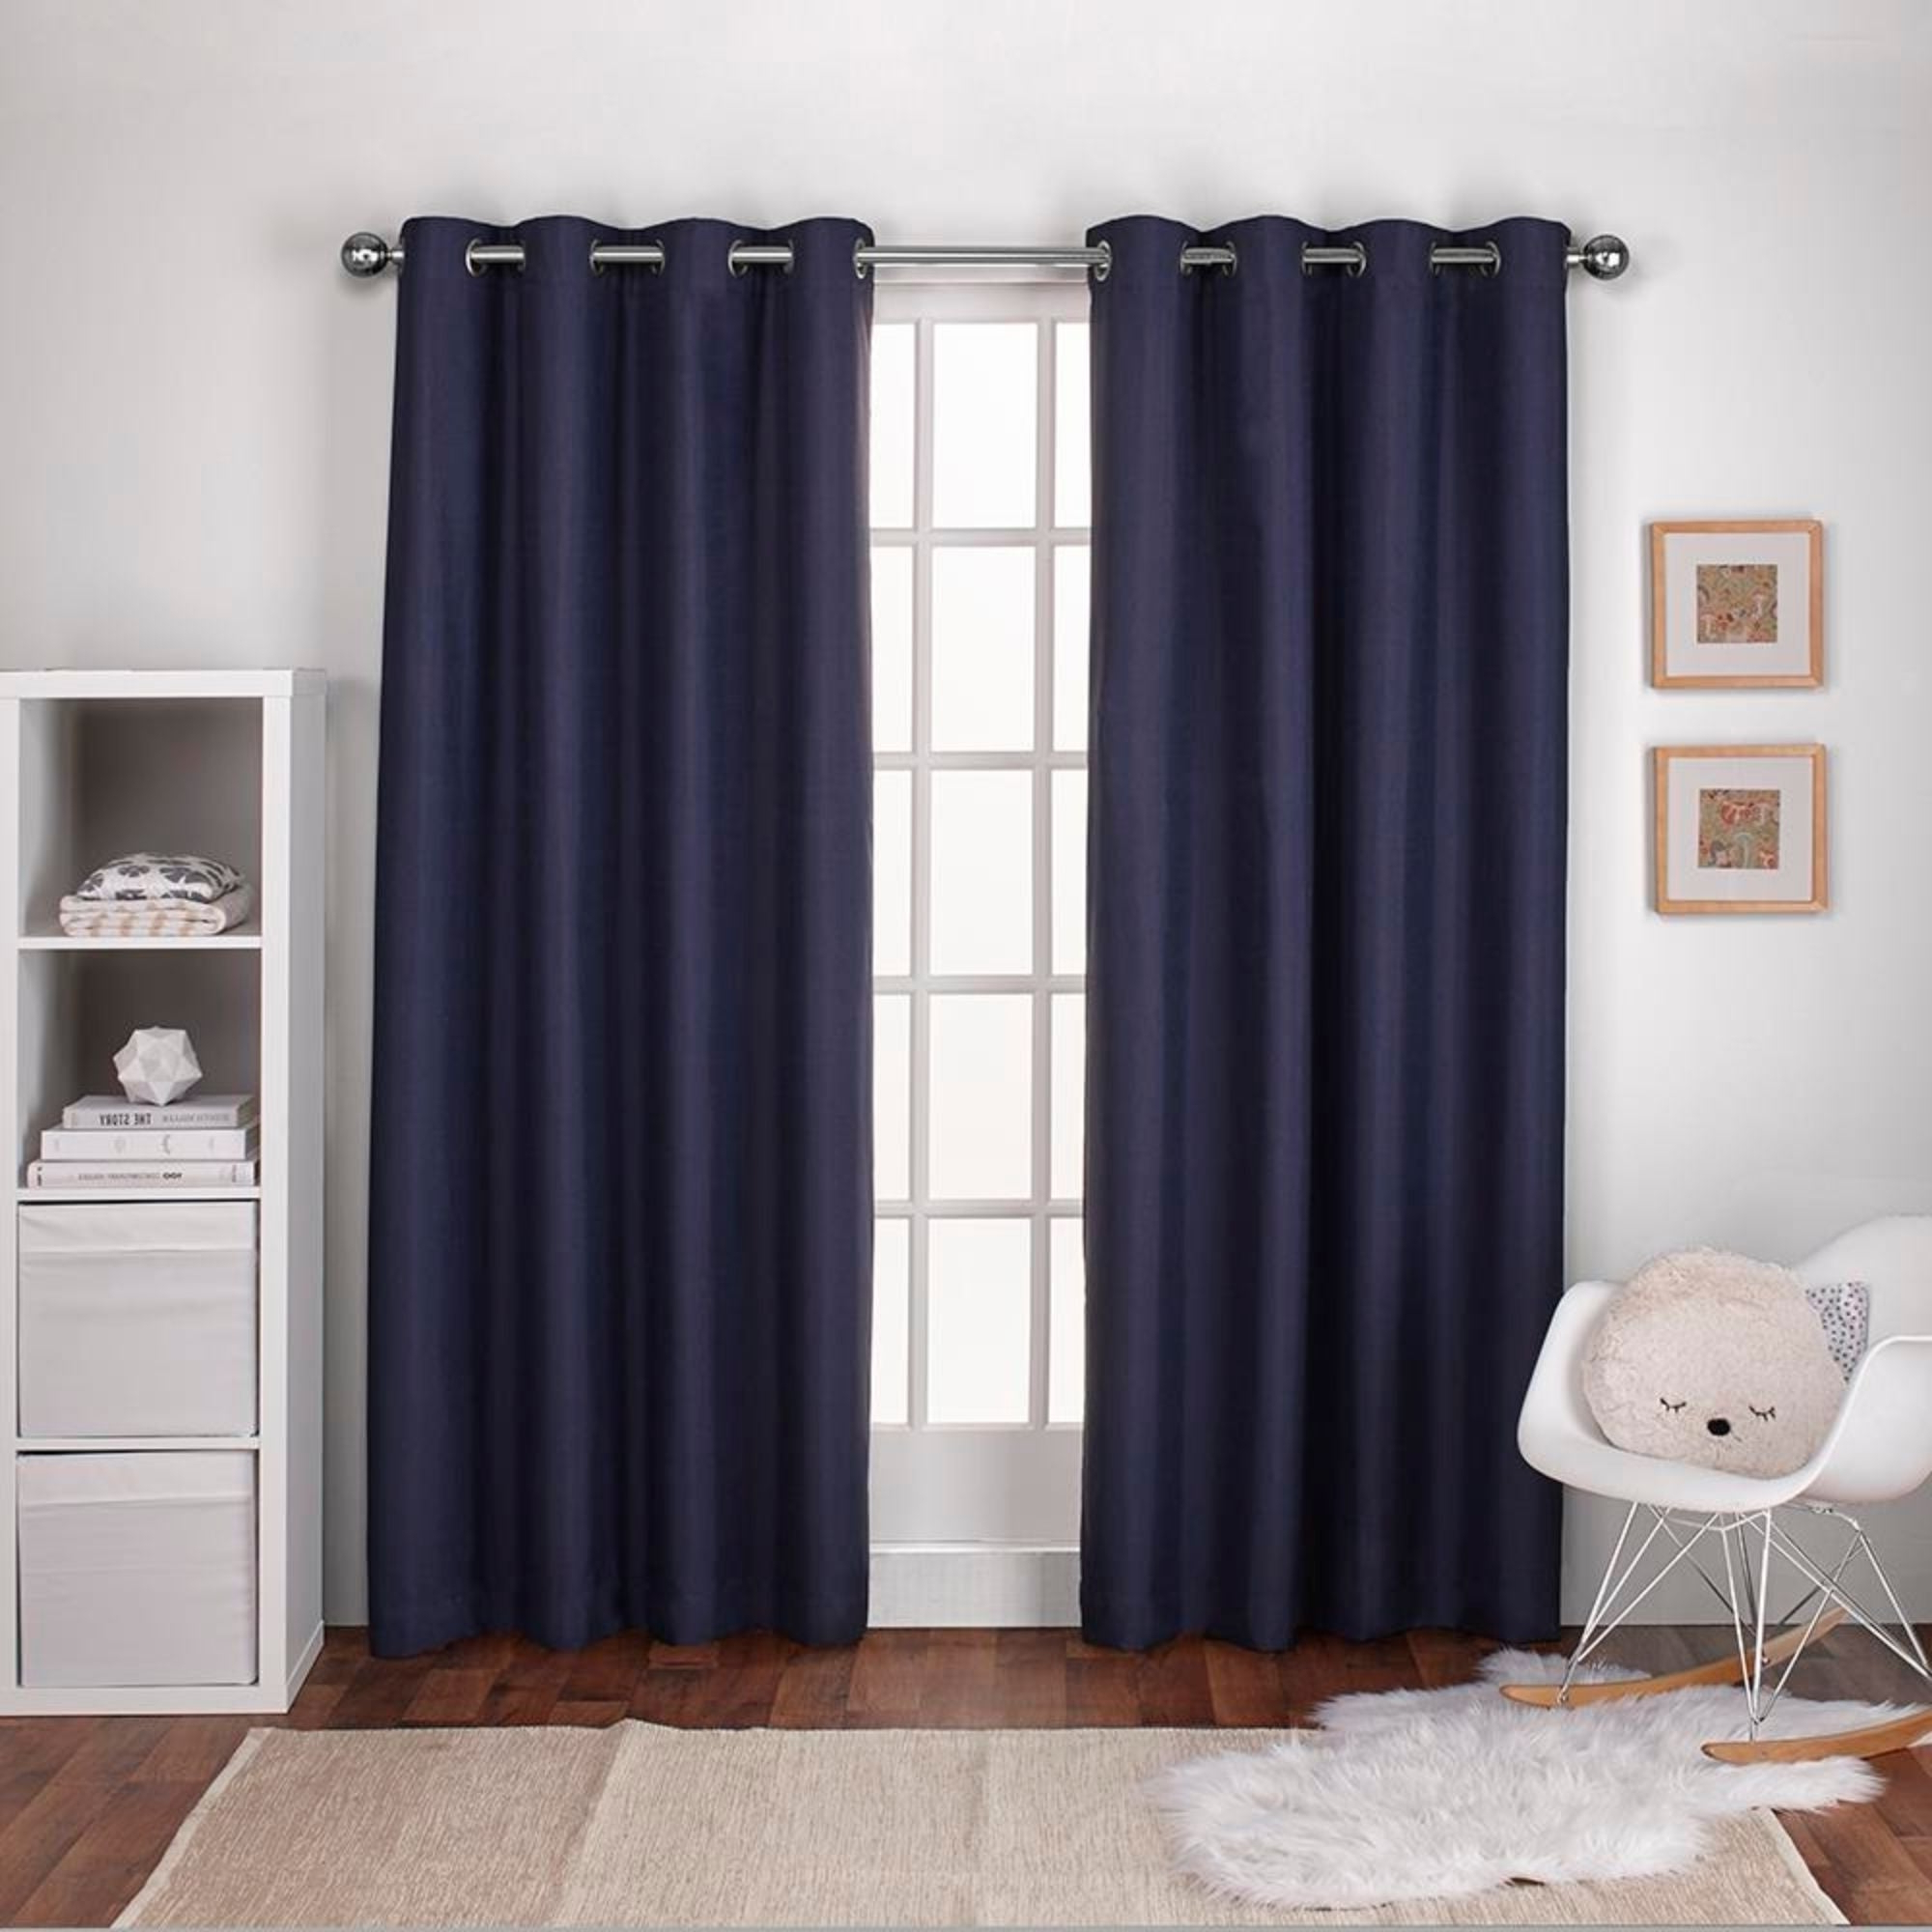 Thermal Woven Blackout Grommet Top Curtain Panel Pairs In Famous Ati Home Linen Thermal Woven Blackout Grommet Top Curtain Panel Pair (View 7 of 20)